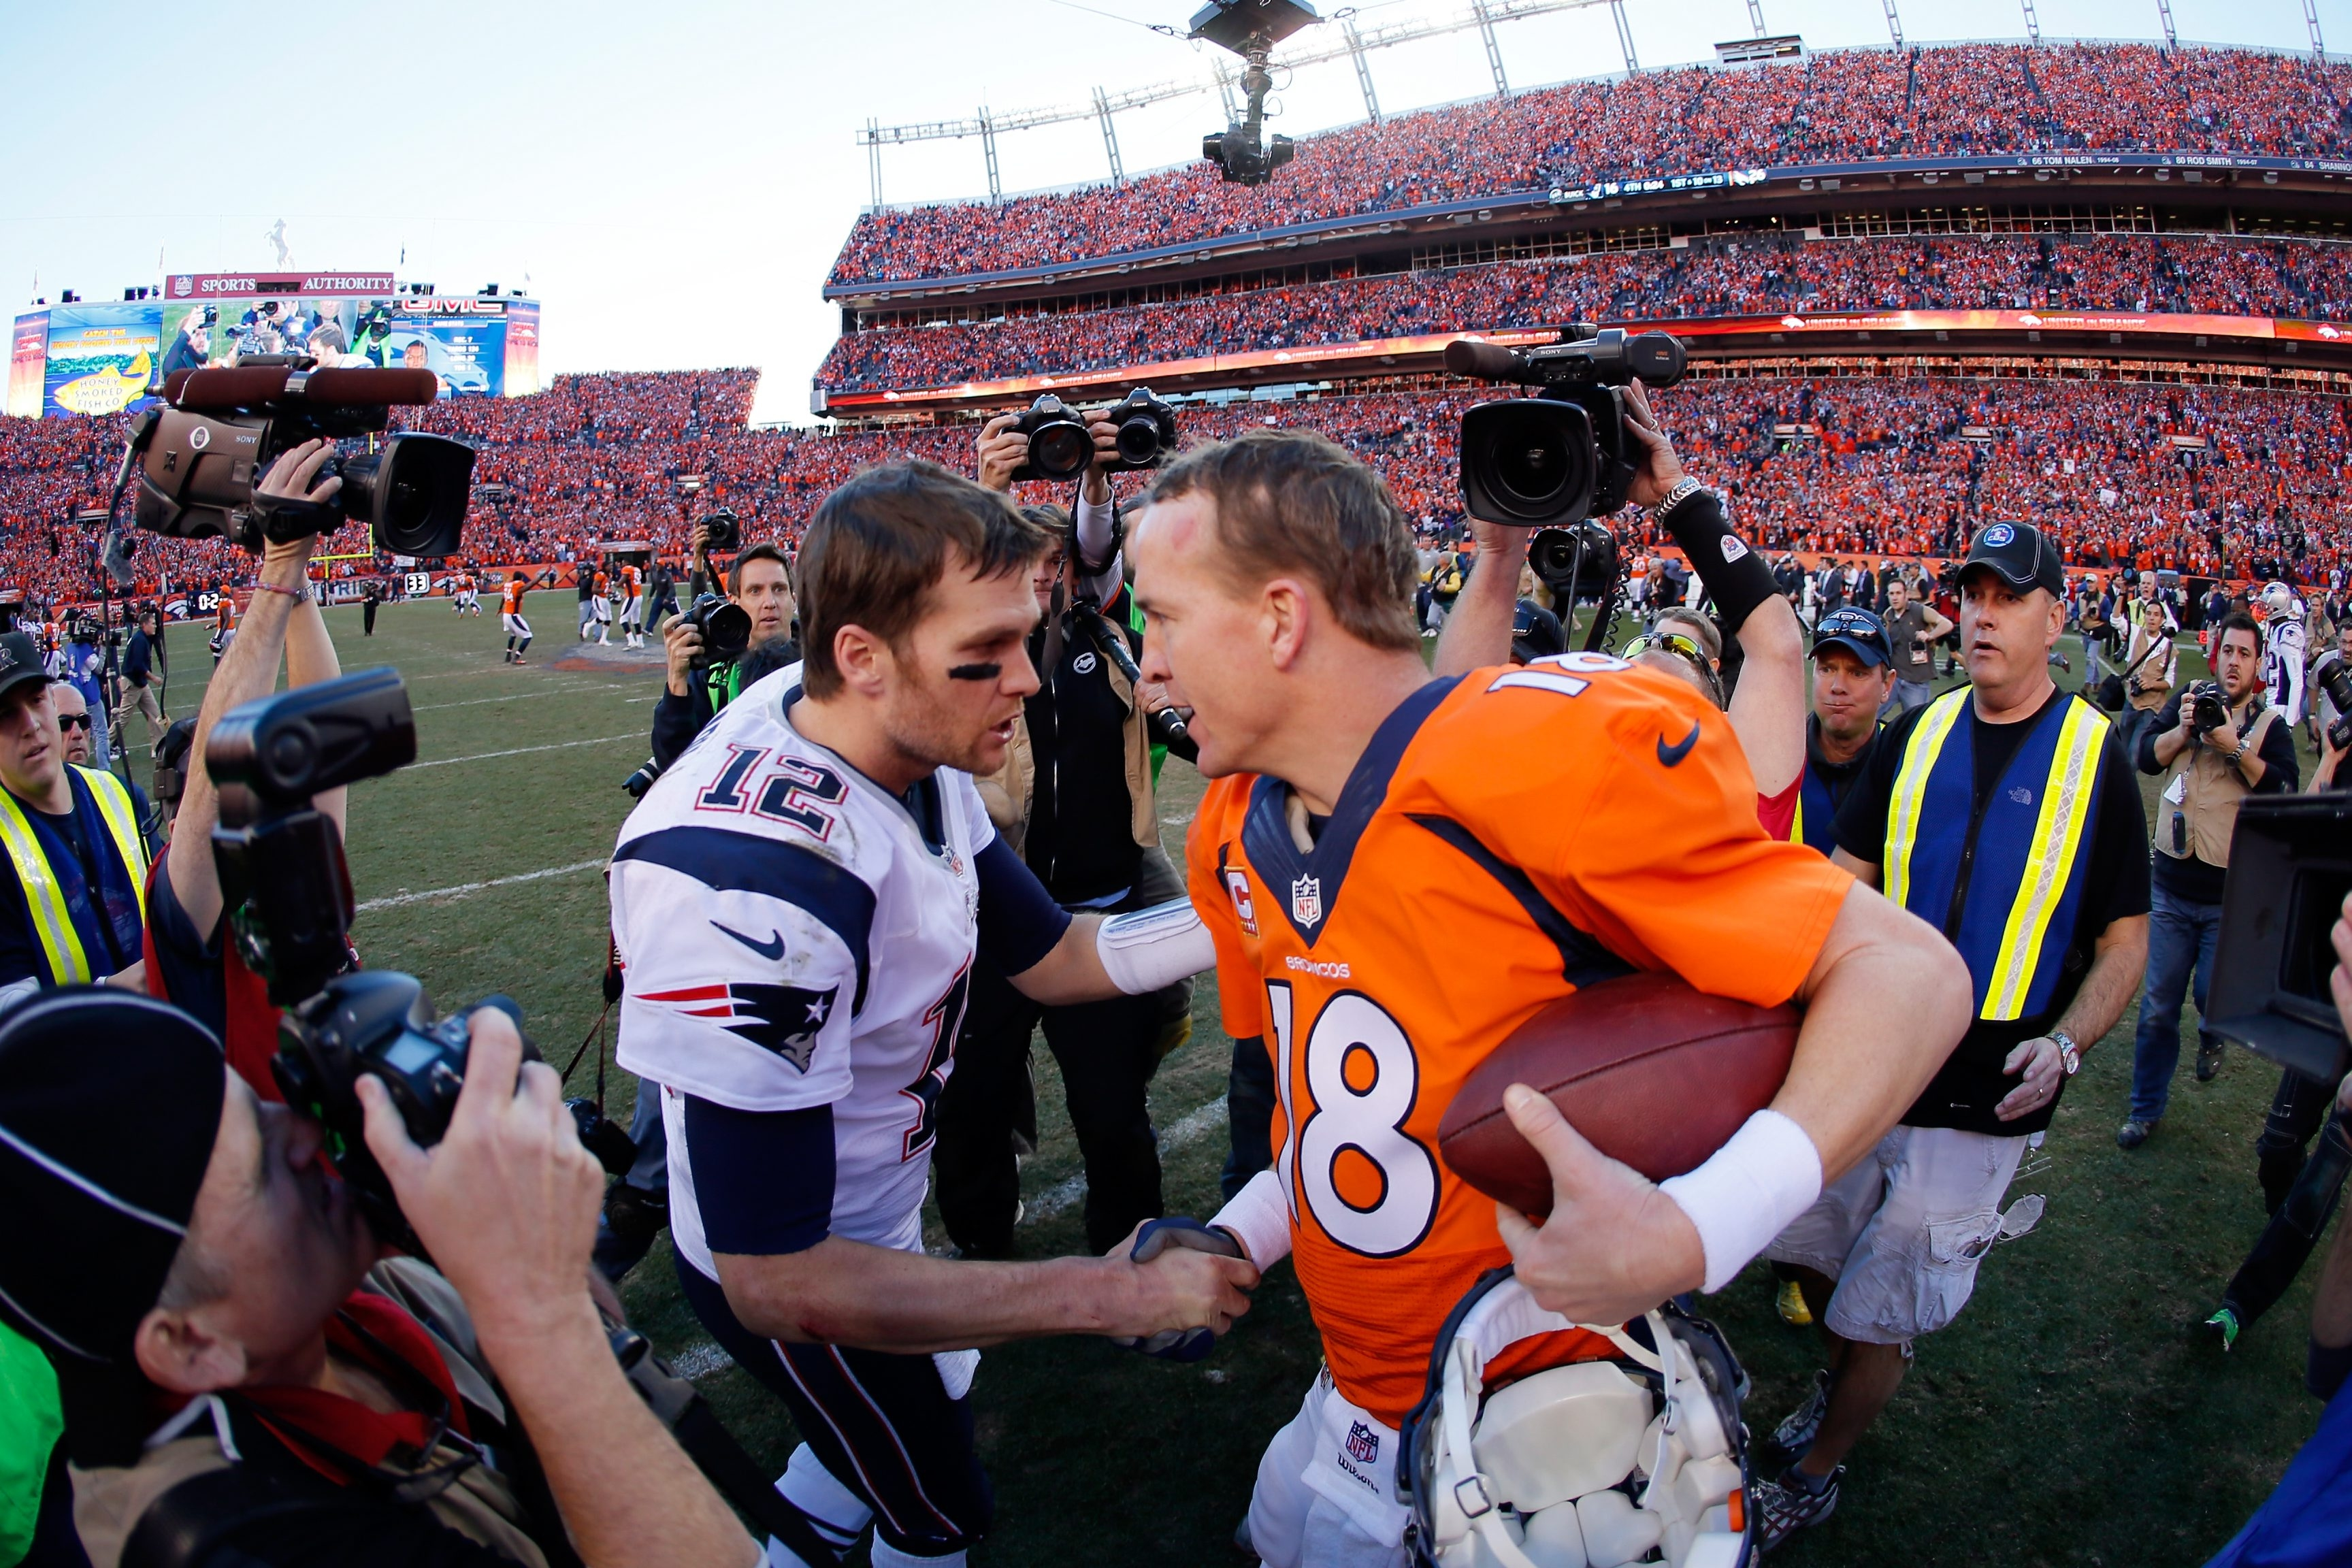 New England QB Tom Brady congratulates Denver QB Peyton Manning after the Broncos defeated the Patriots, 26-16, for the AFC Championship last January in Denver.